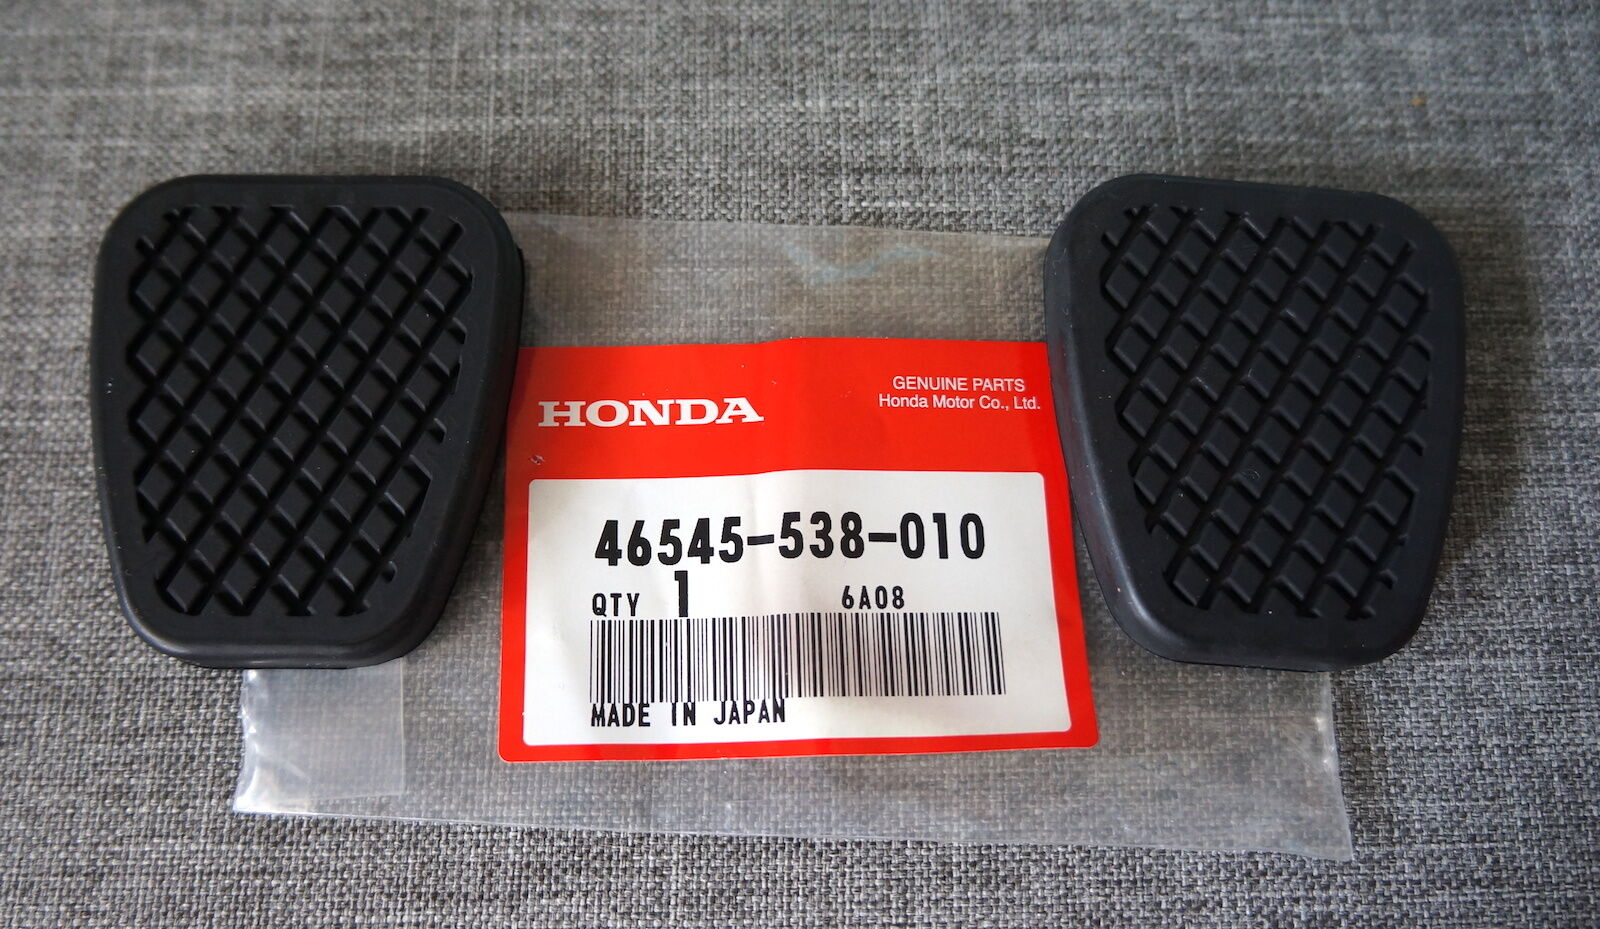 2x OEM Honda Brake & Clutch Pedal Pad Cover for CR-V CR-X 1 of 7Only 3  available 2x OEM Honda Brake & Clutch Pedal Pad ...